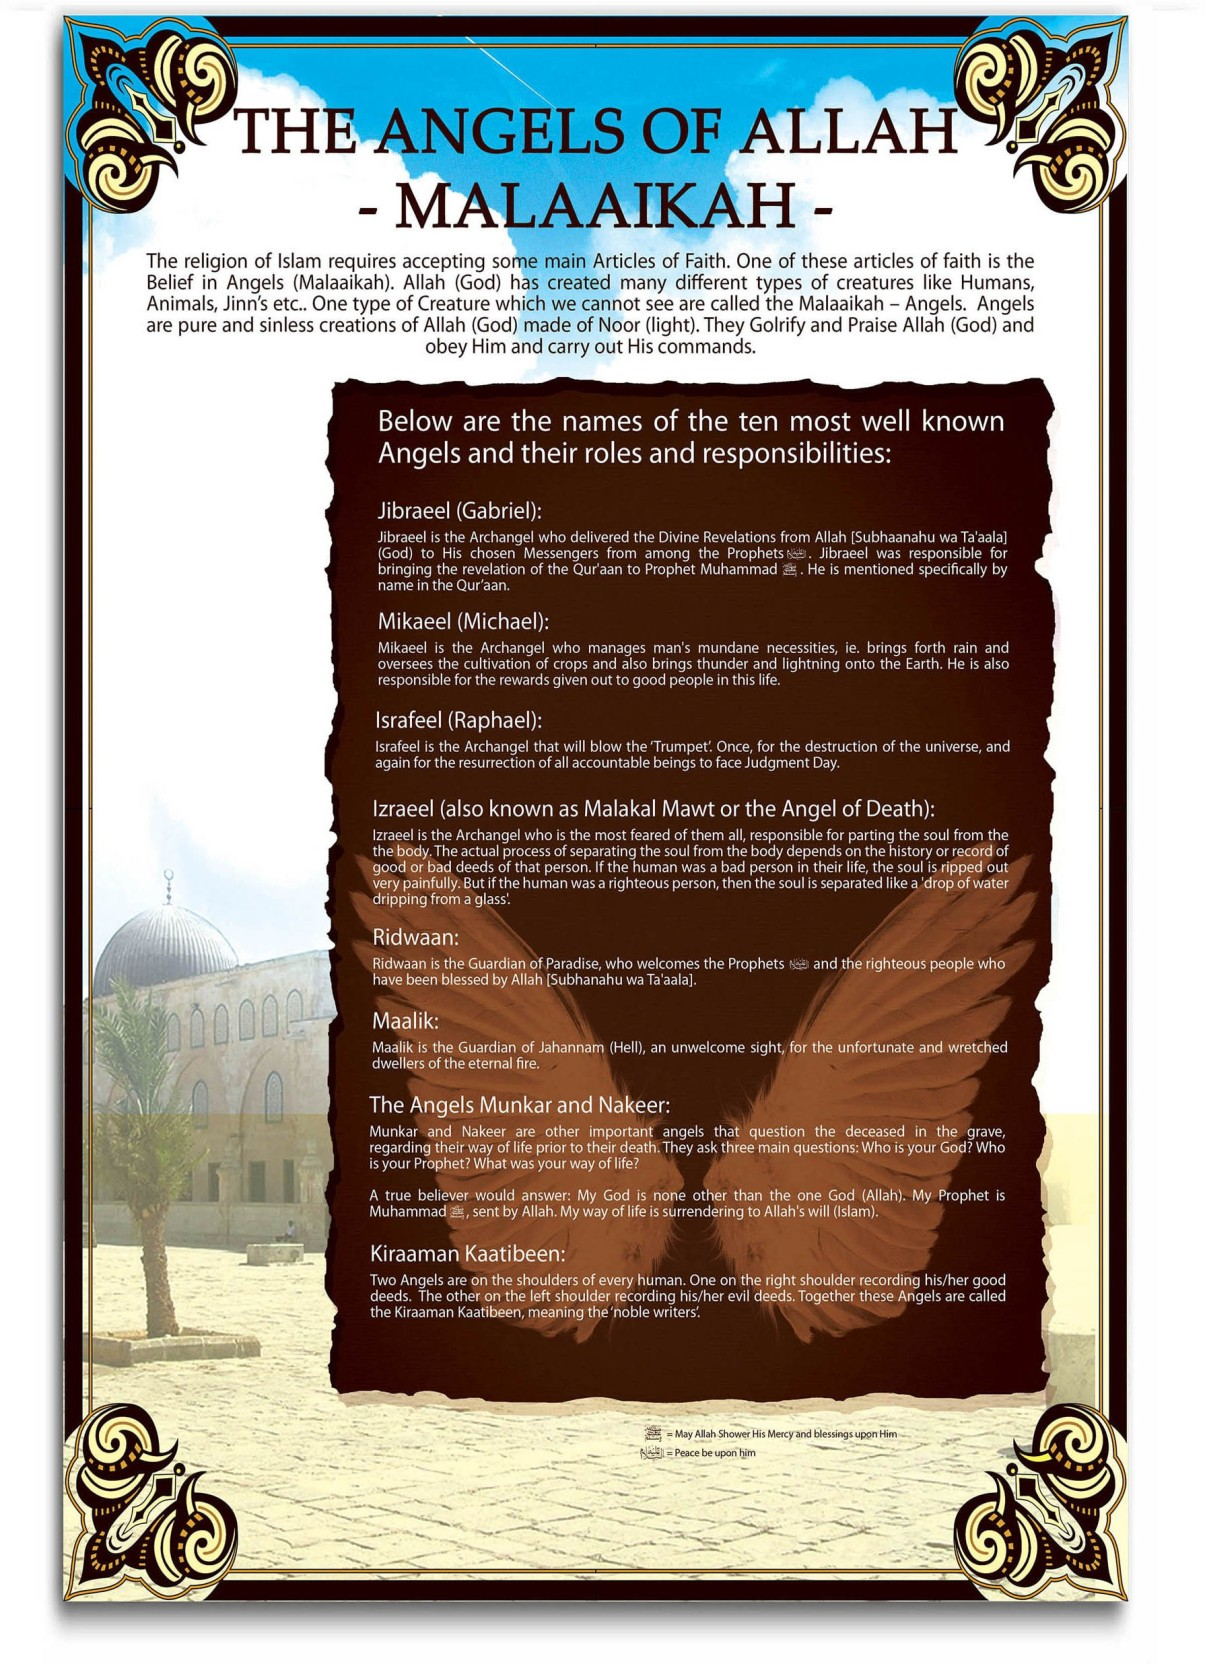 Islamic Wall Poster - Angels of Allah - Large Size Poster